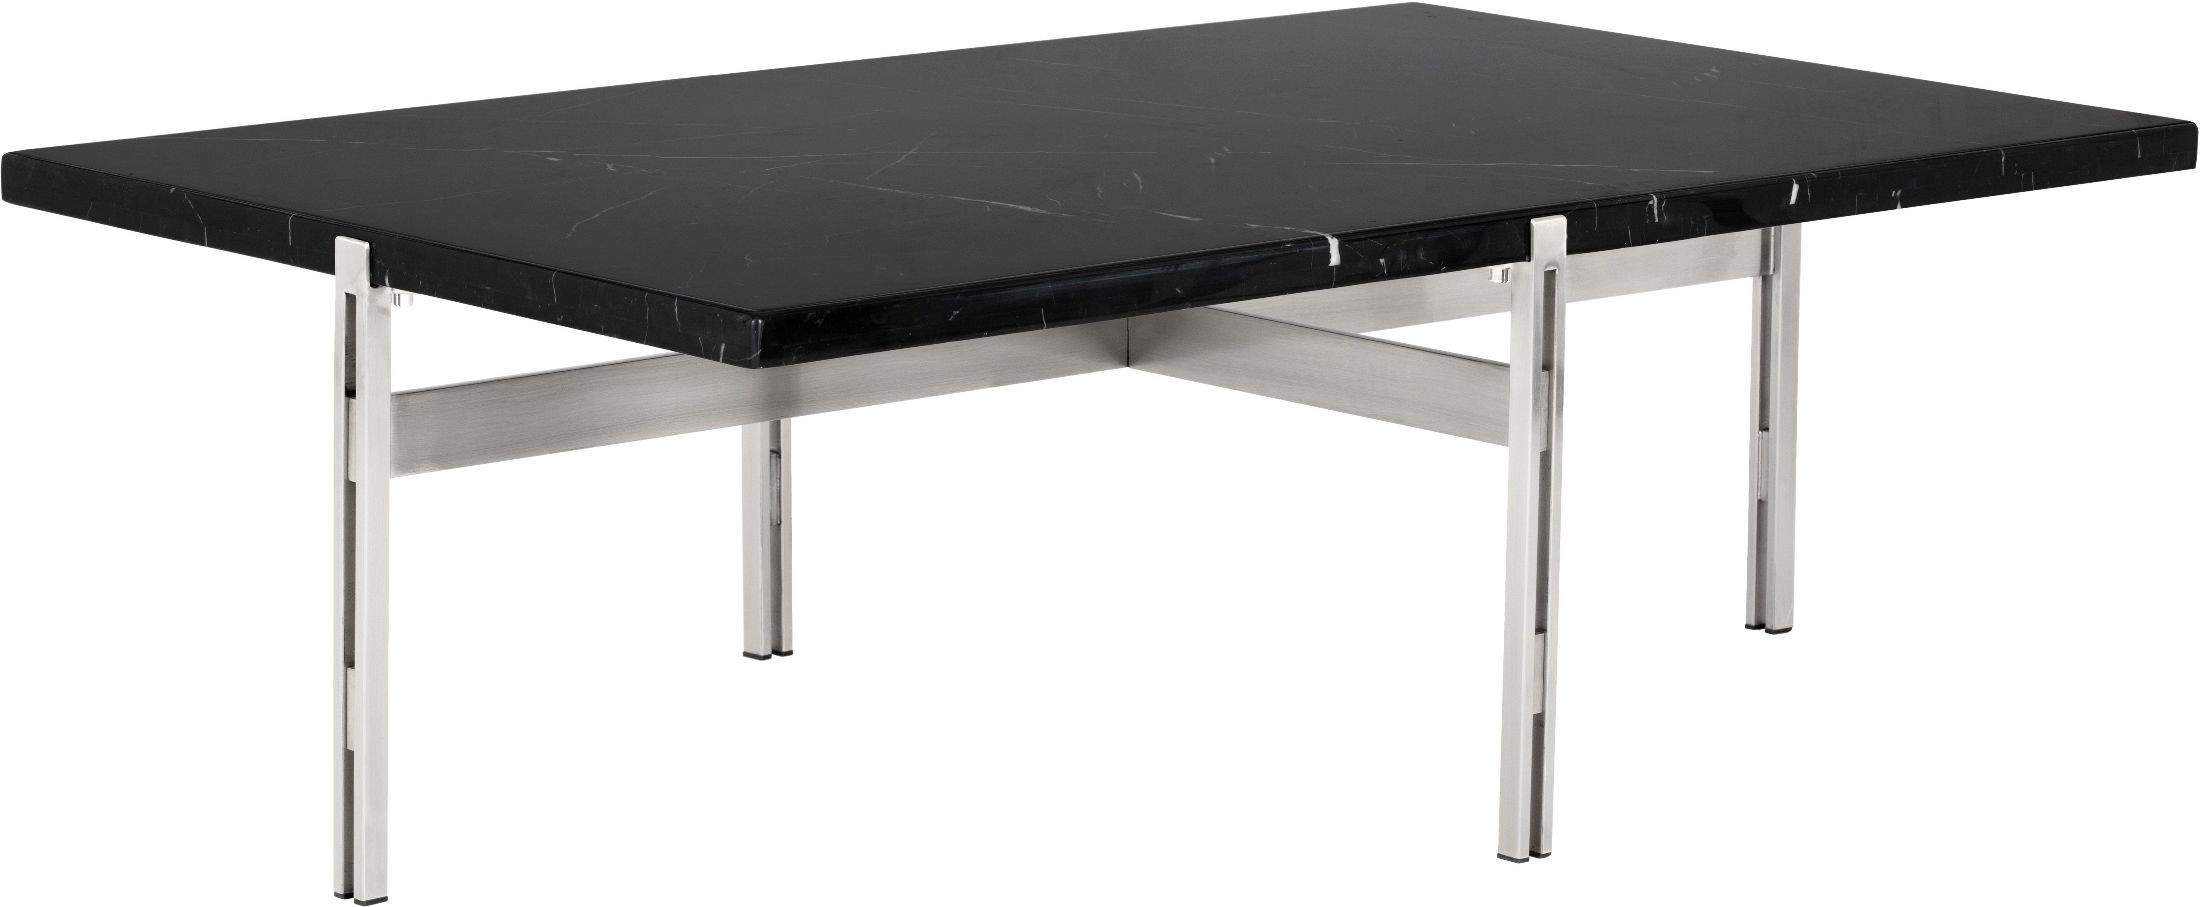 Enzo black marble coffee table from sunpan coleman furniture enzo black marble coffee table geotapseo Image collections